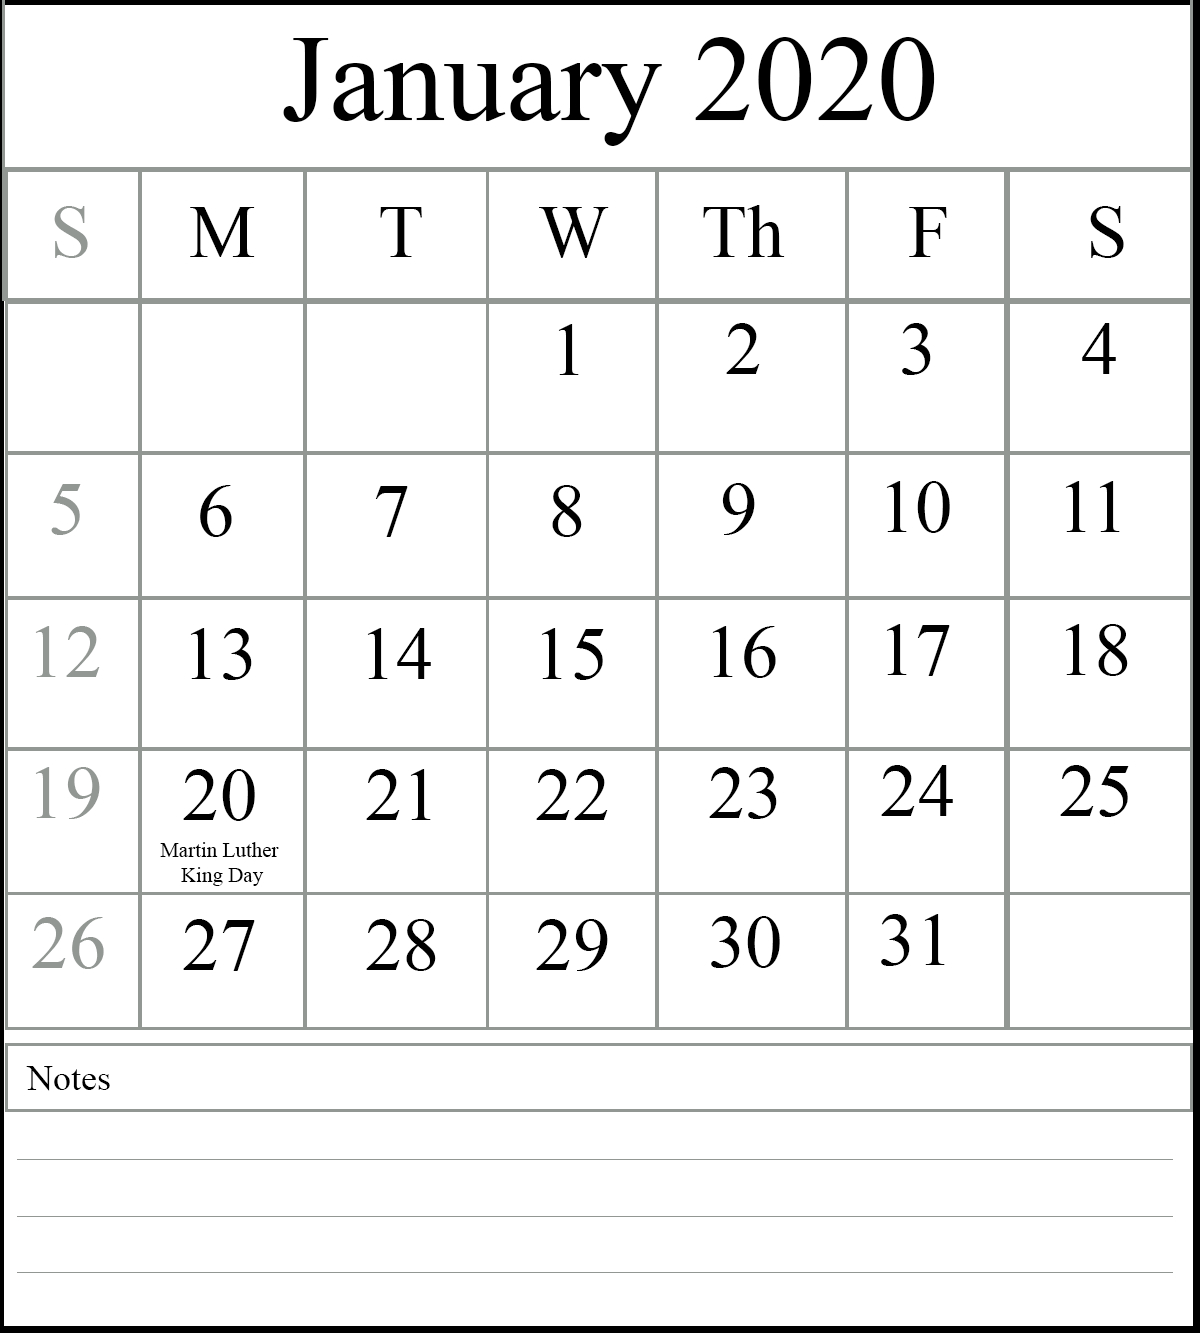 January 2020 Calendar Excel – Free Monthly Calendar regarding Waterproof Calendar January 2020